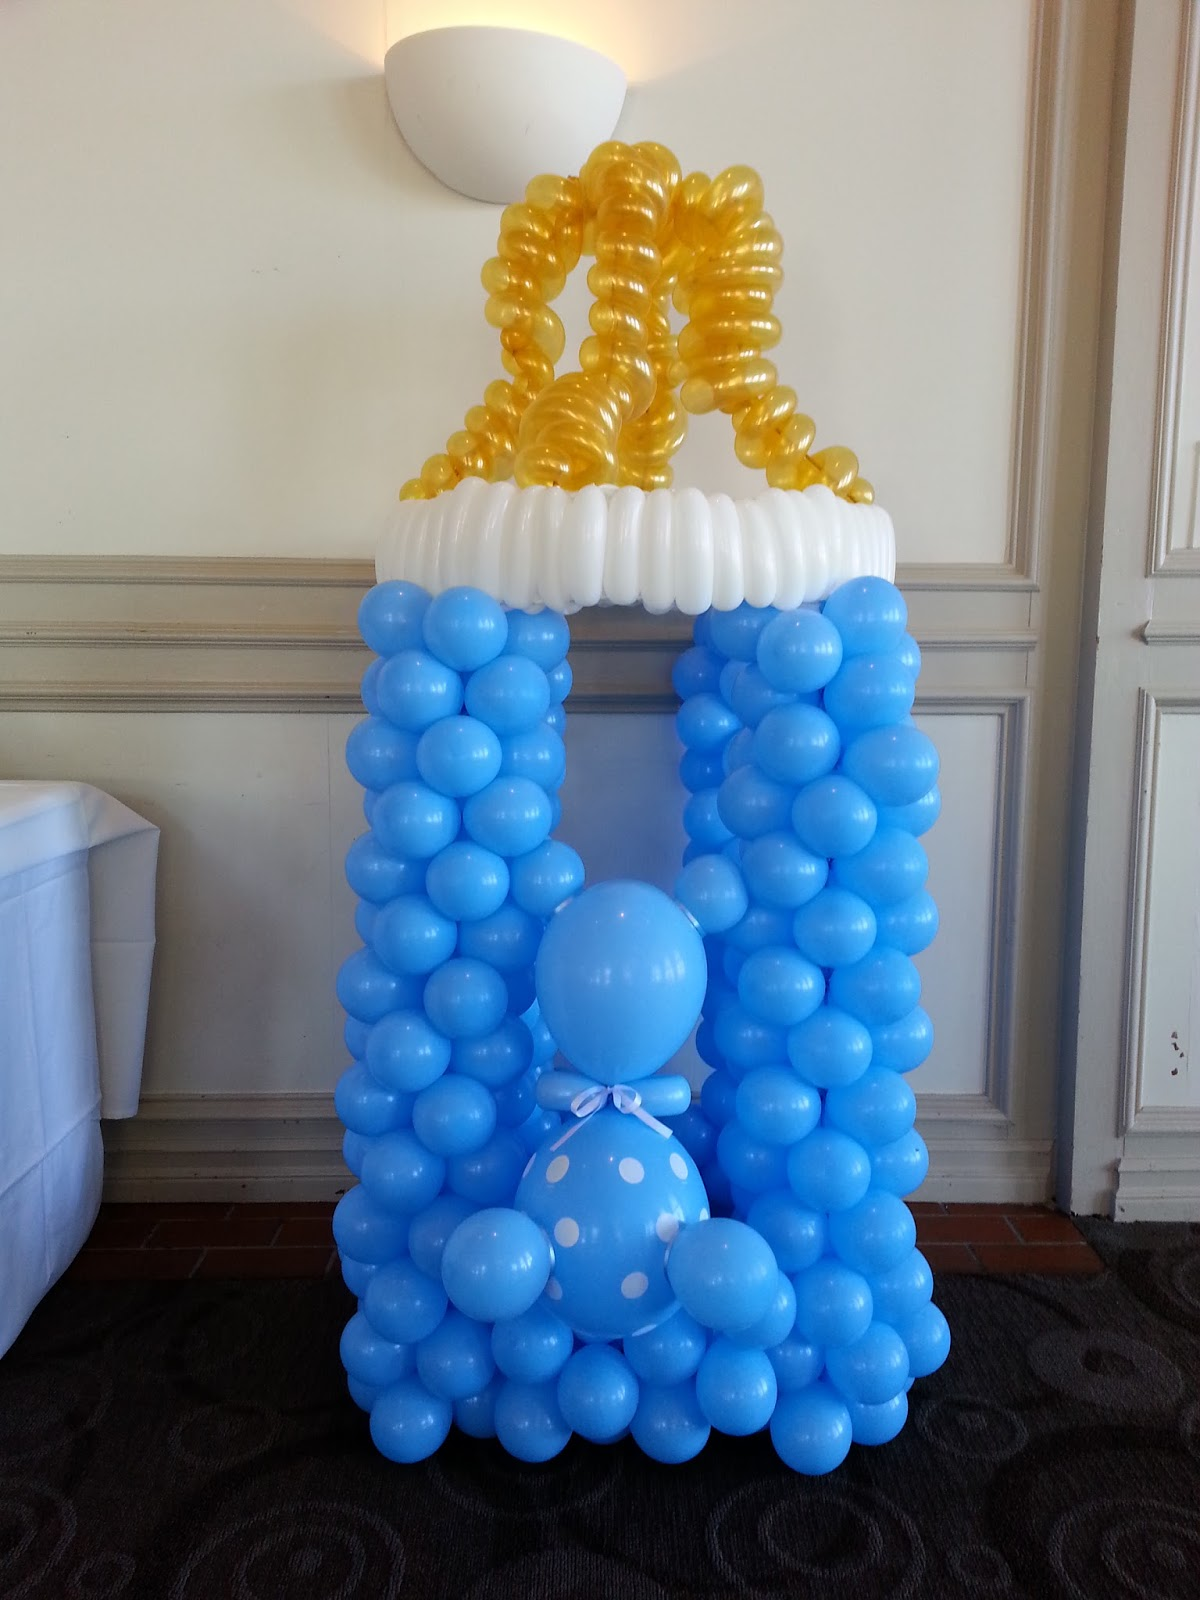 Pop balloons a baby shower for a boy for Baby bottle decoration ideas